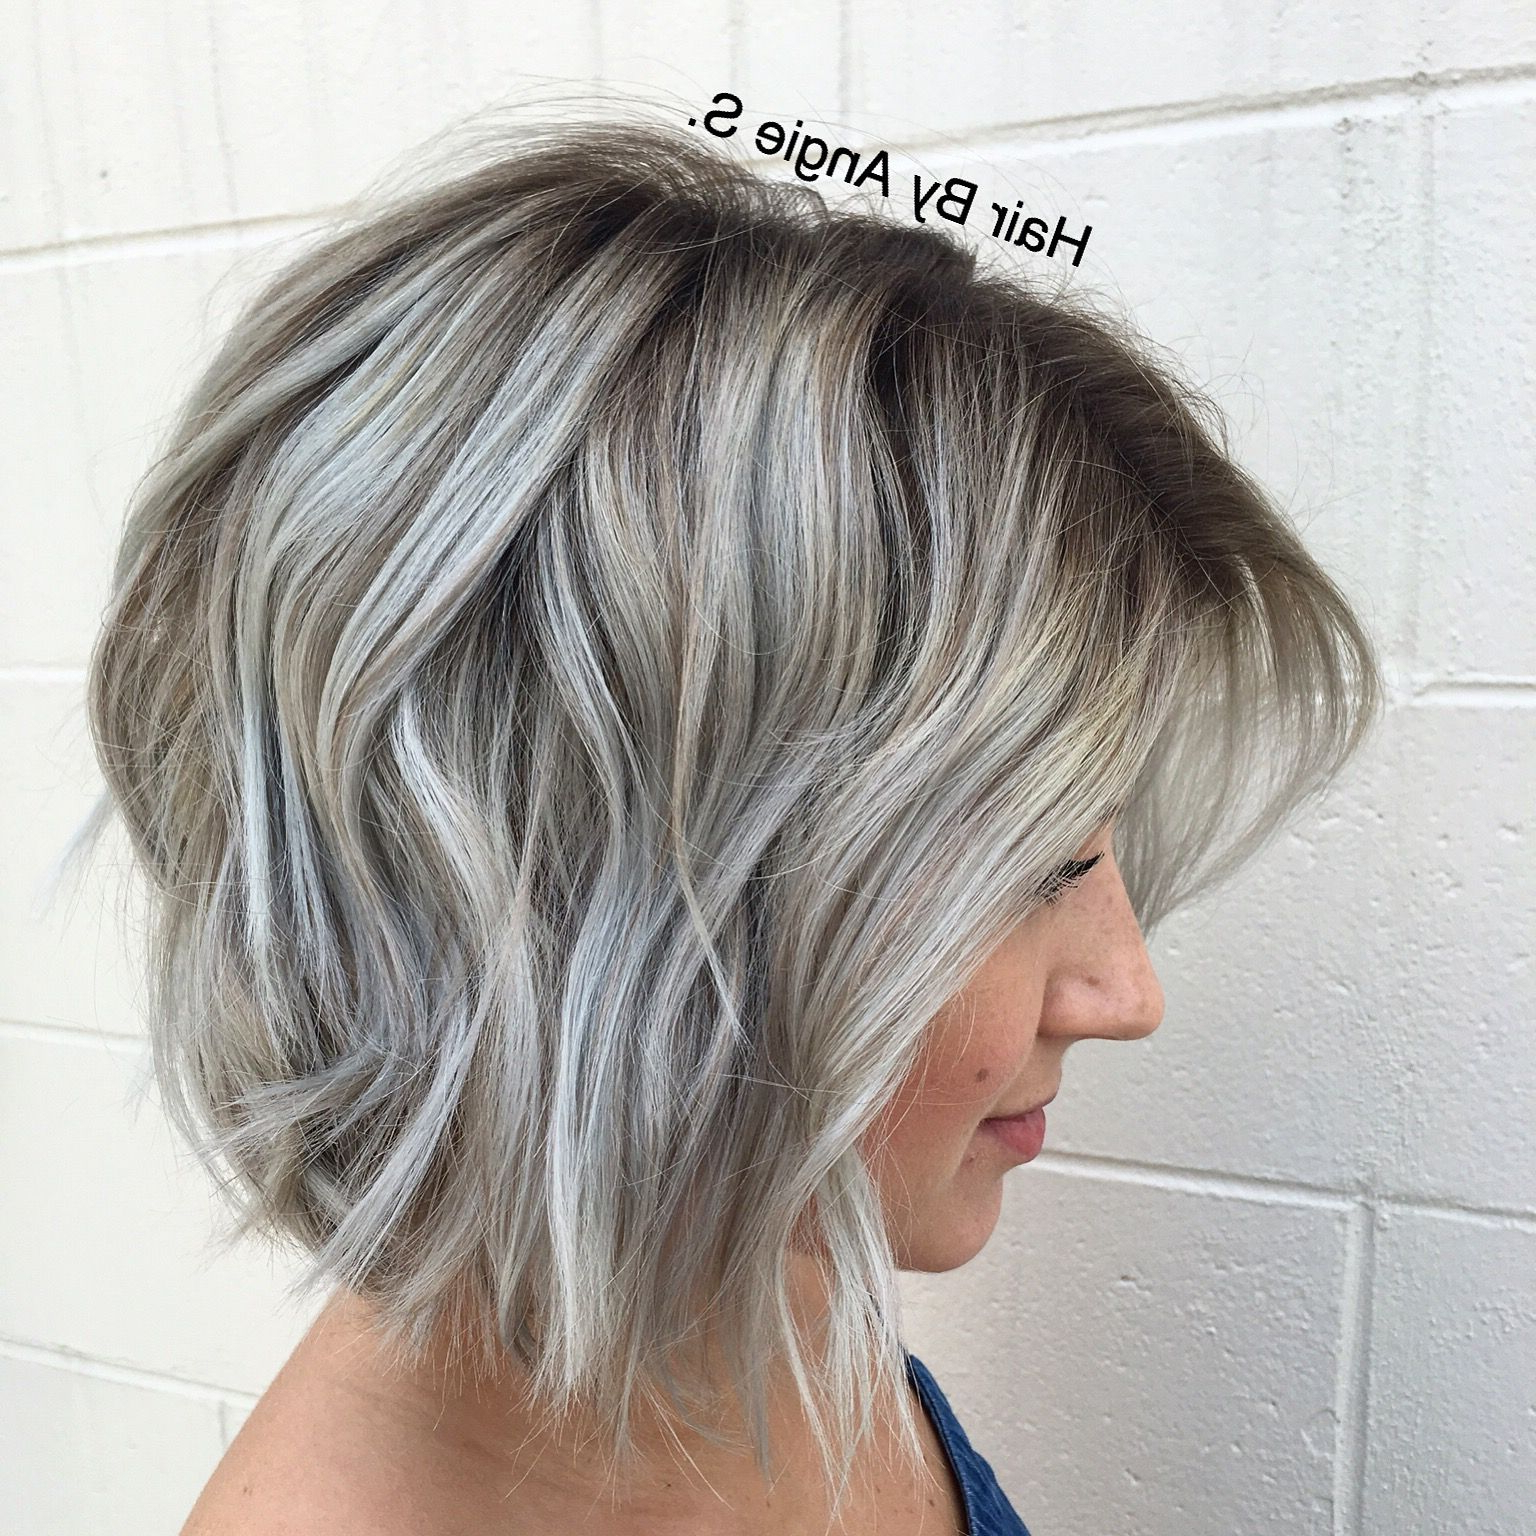 So Obsessed With My Hair : Dimensional Silver/grey #balayage Within Silver Balayage Bob Haircuts With Swoopy Layers (Gallery 1 of 20)